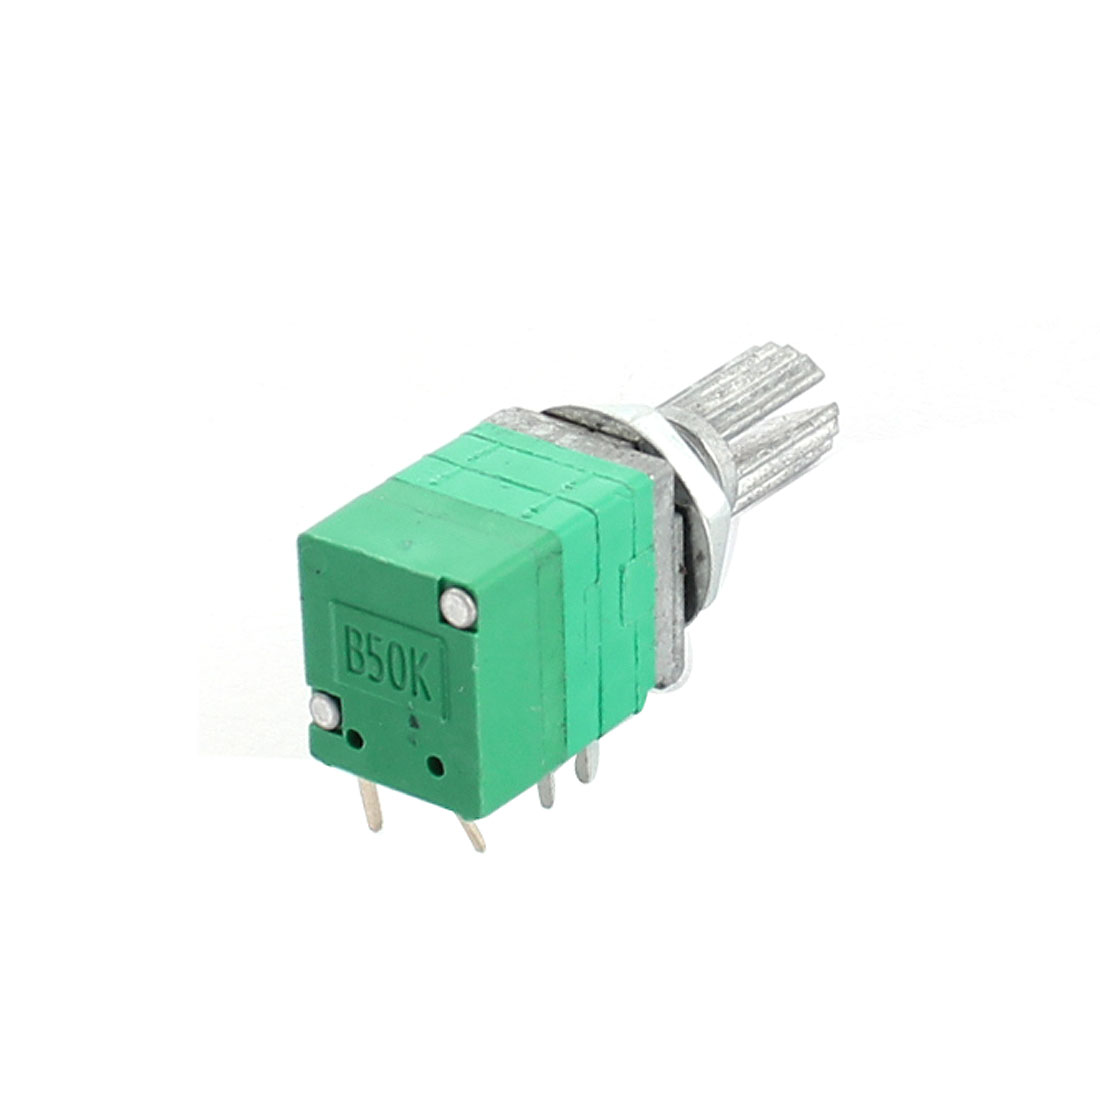 B50K 50K Ohm 6mm Knurled Shaft 7mm Thread 8Pin Through Hole Mount Rotary Adjustable Potentiometer Switch